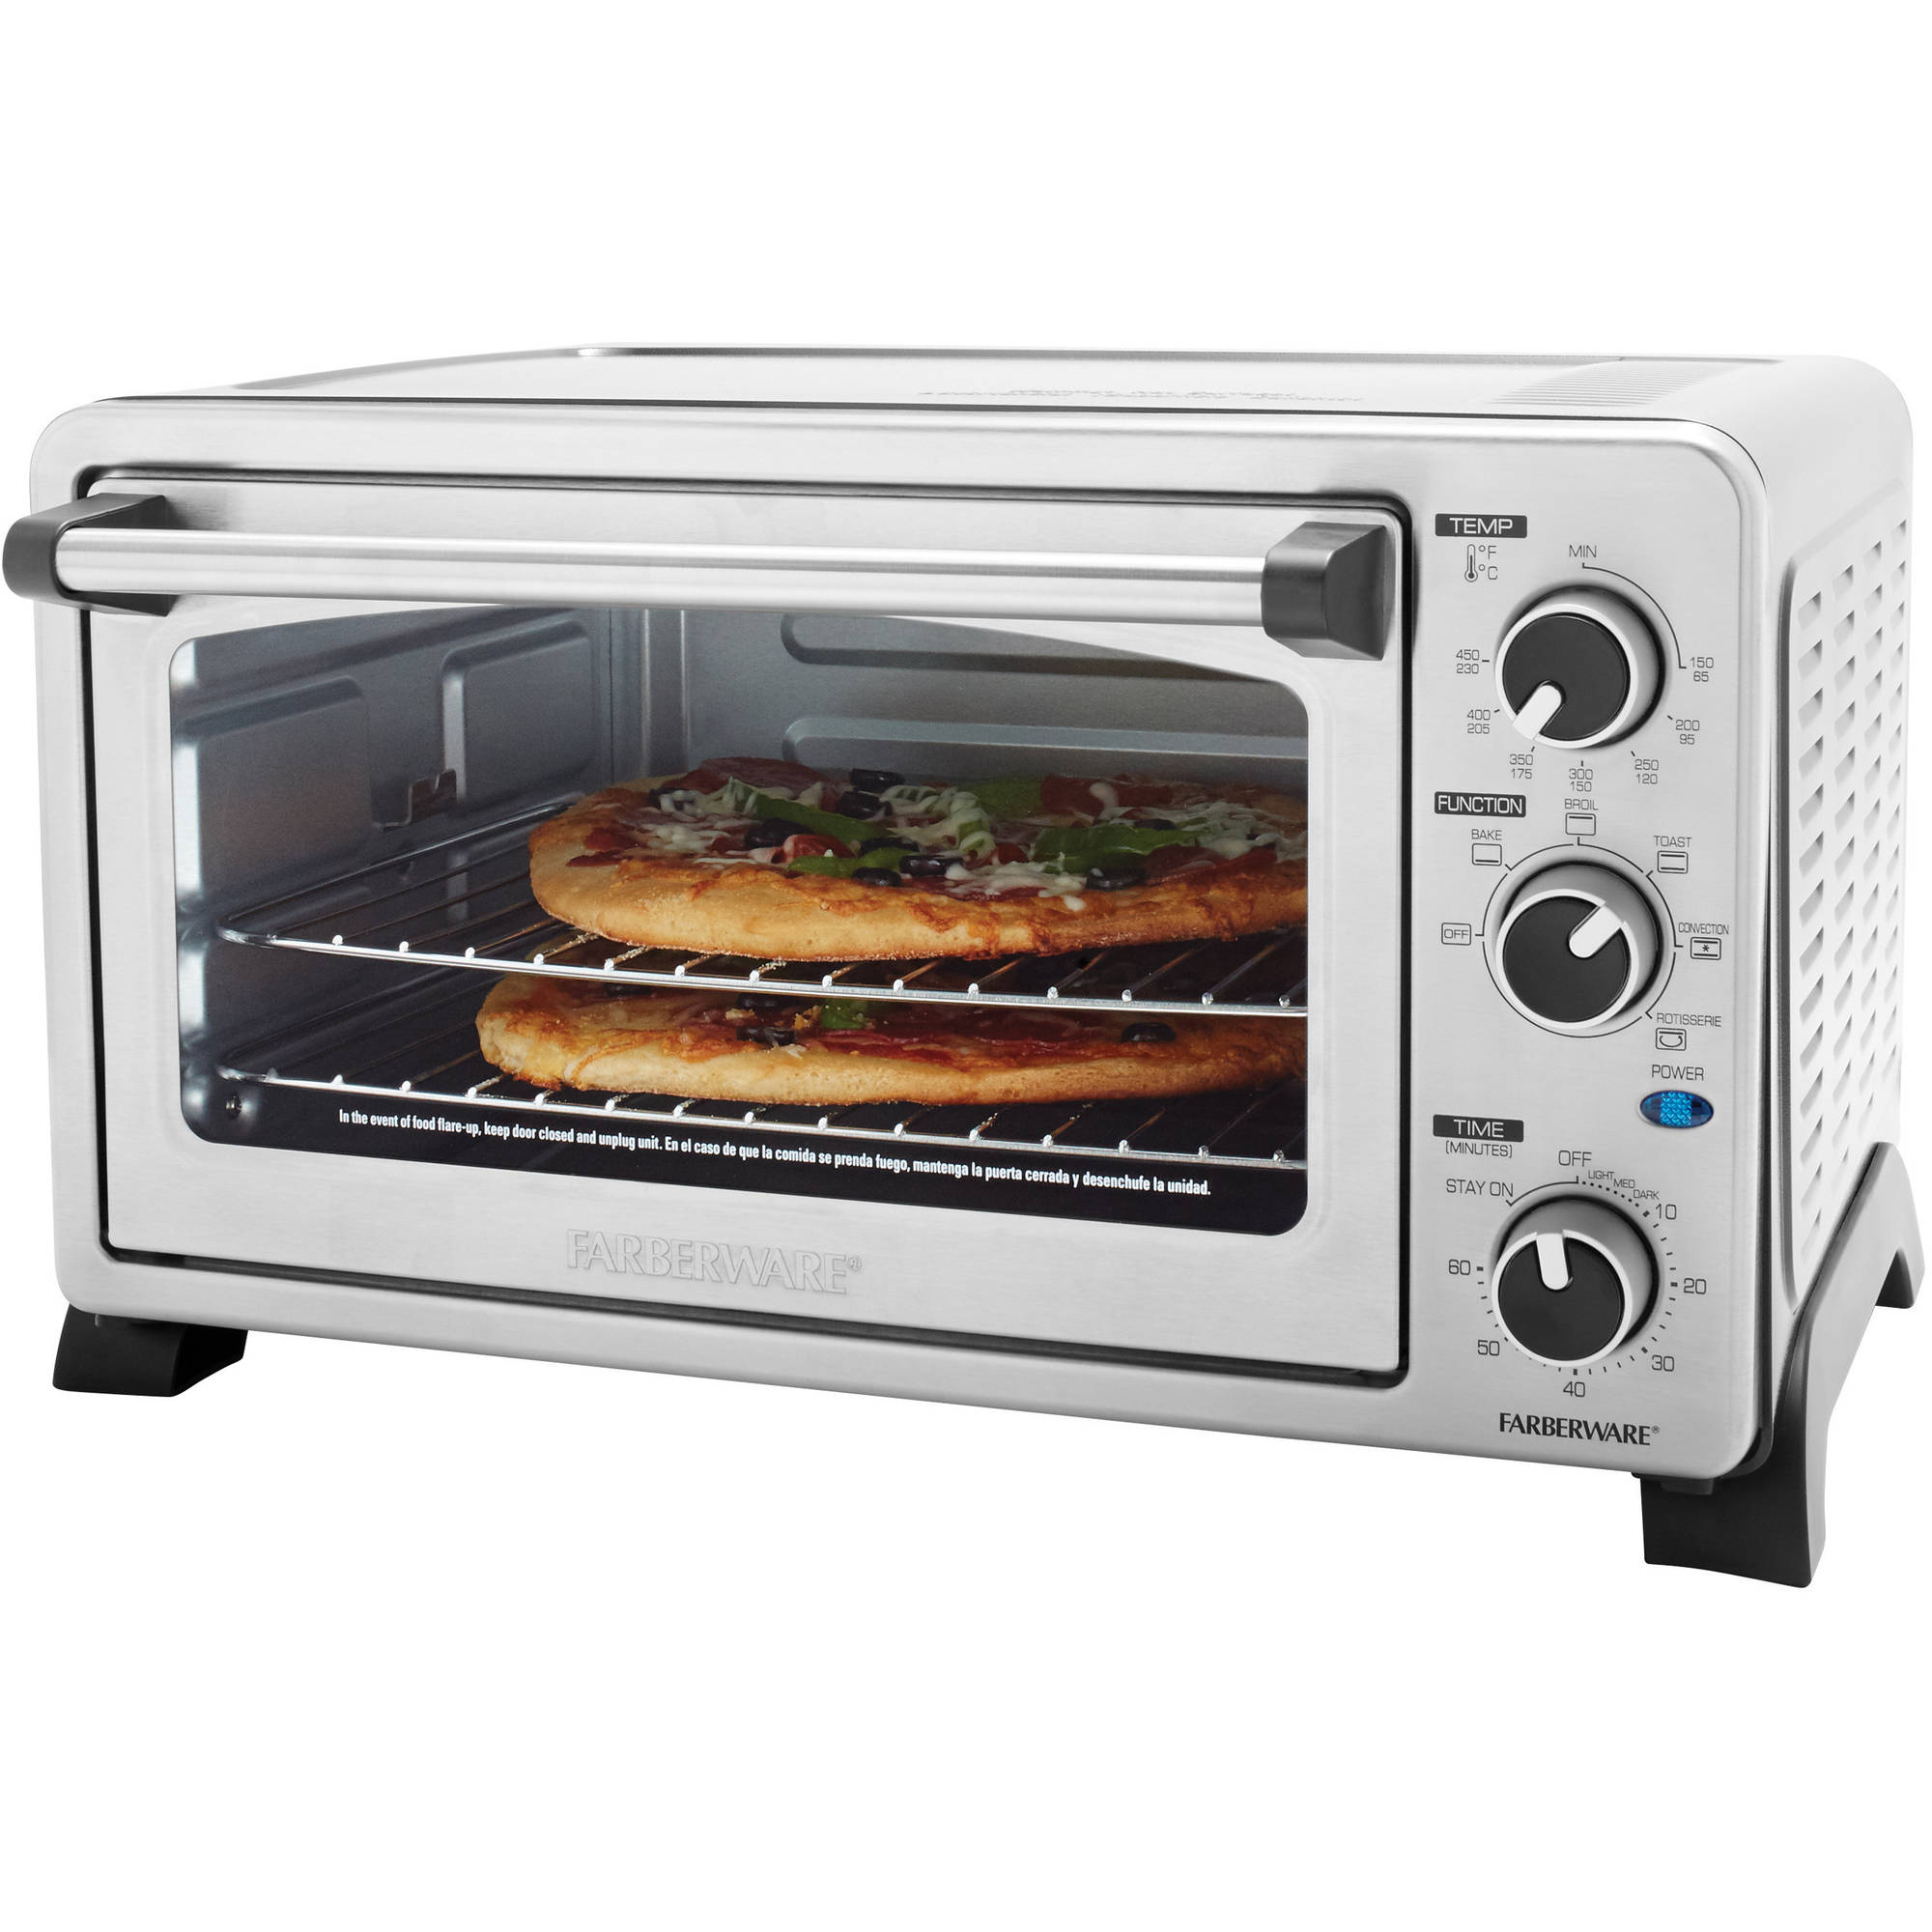 Farberware Toaster Oven Stainless Steel Walmart Com